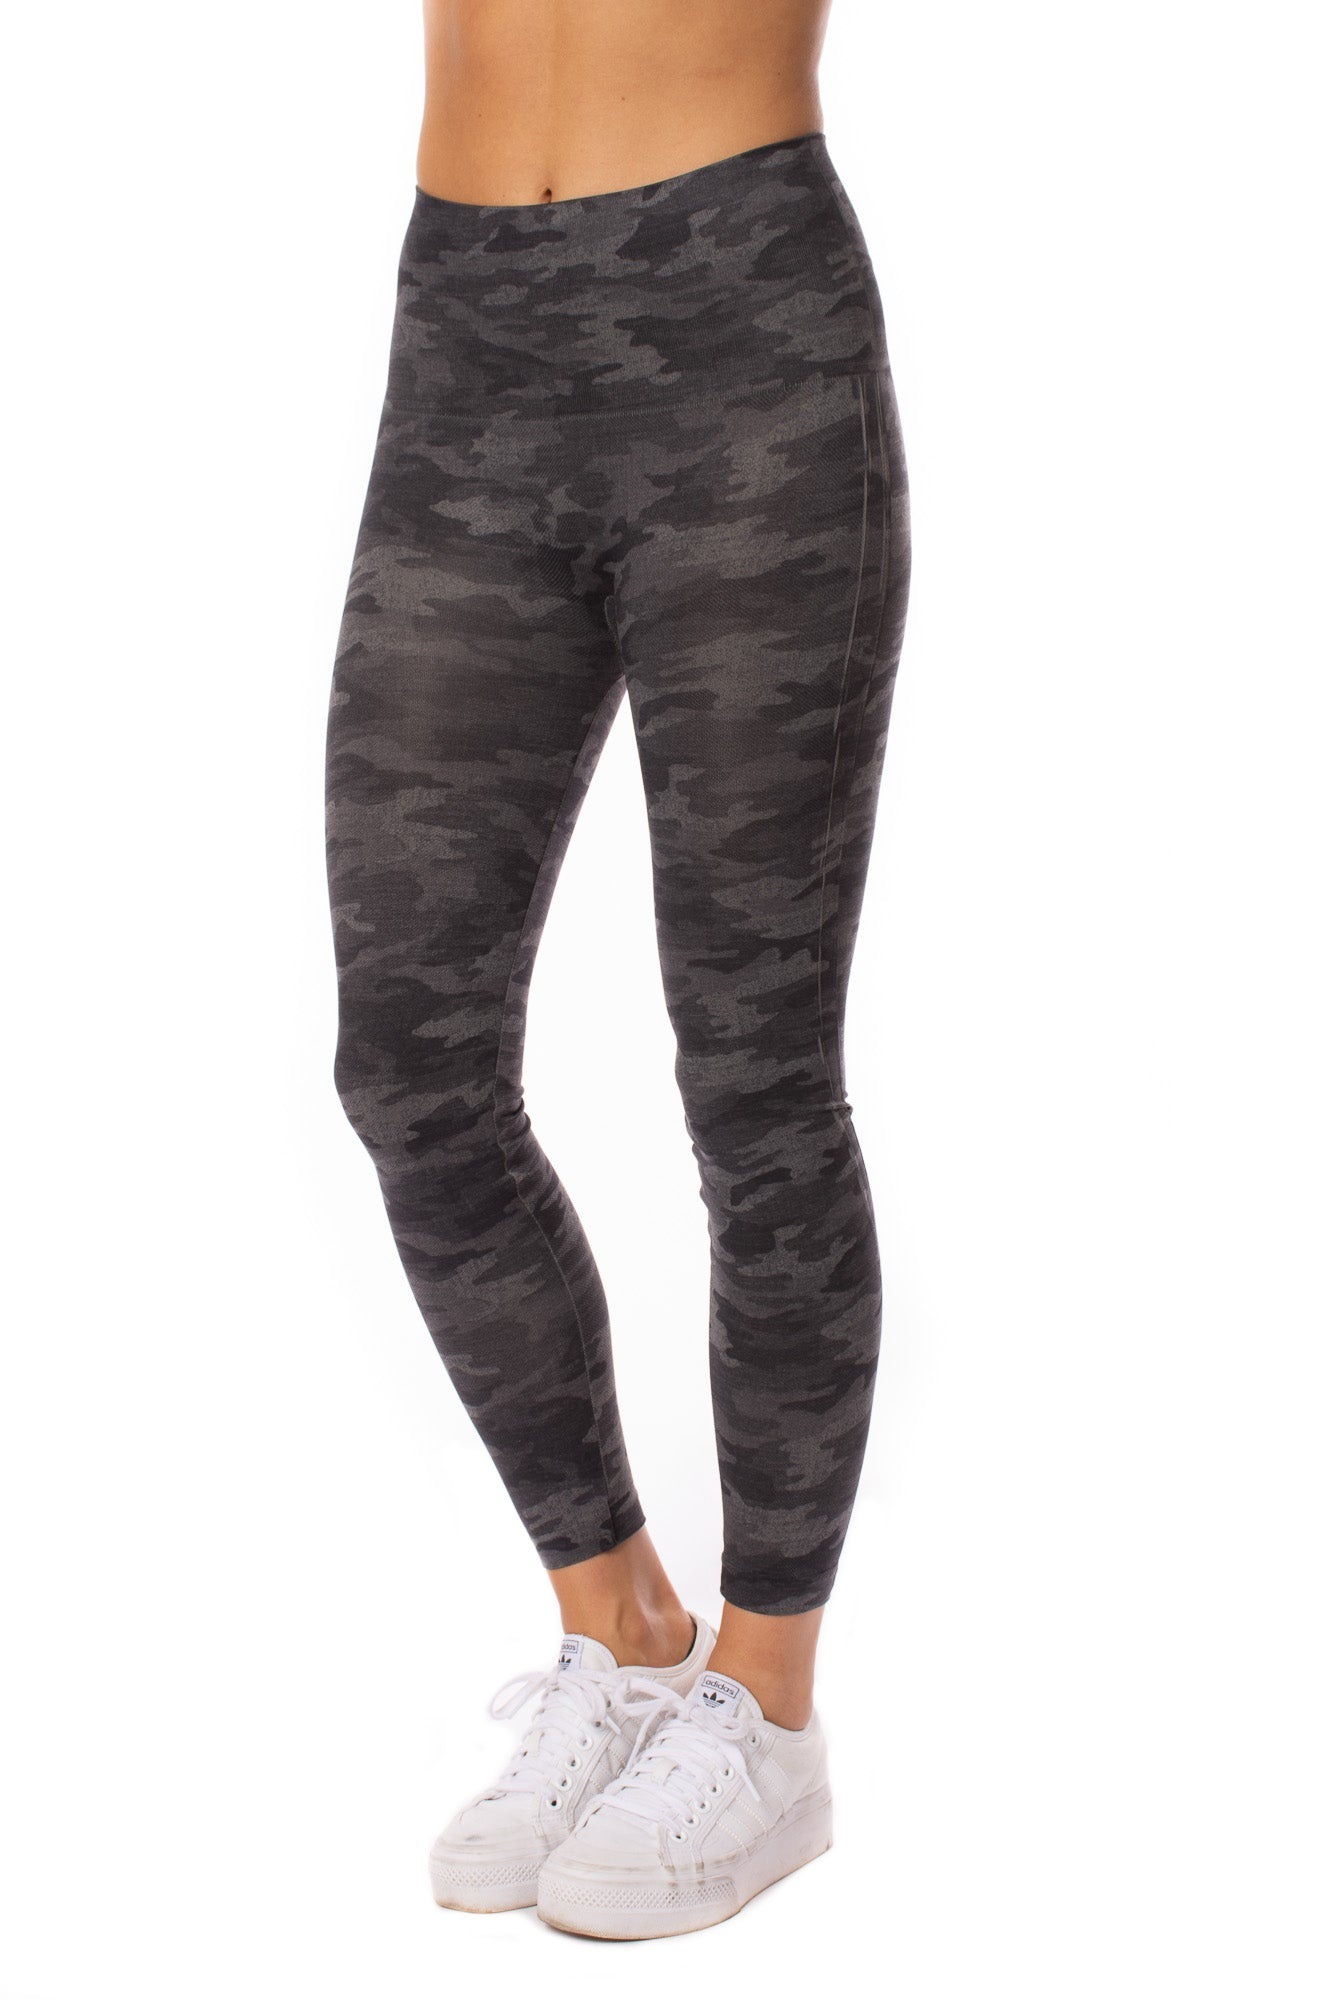 Spanx - Look At Me Know Legging (fl3515, Gray Camo)